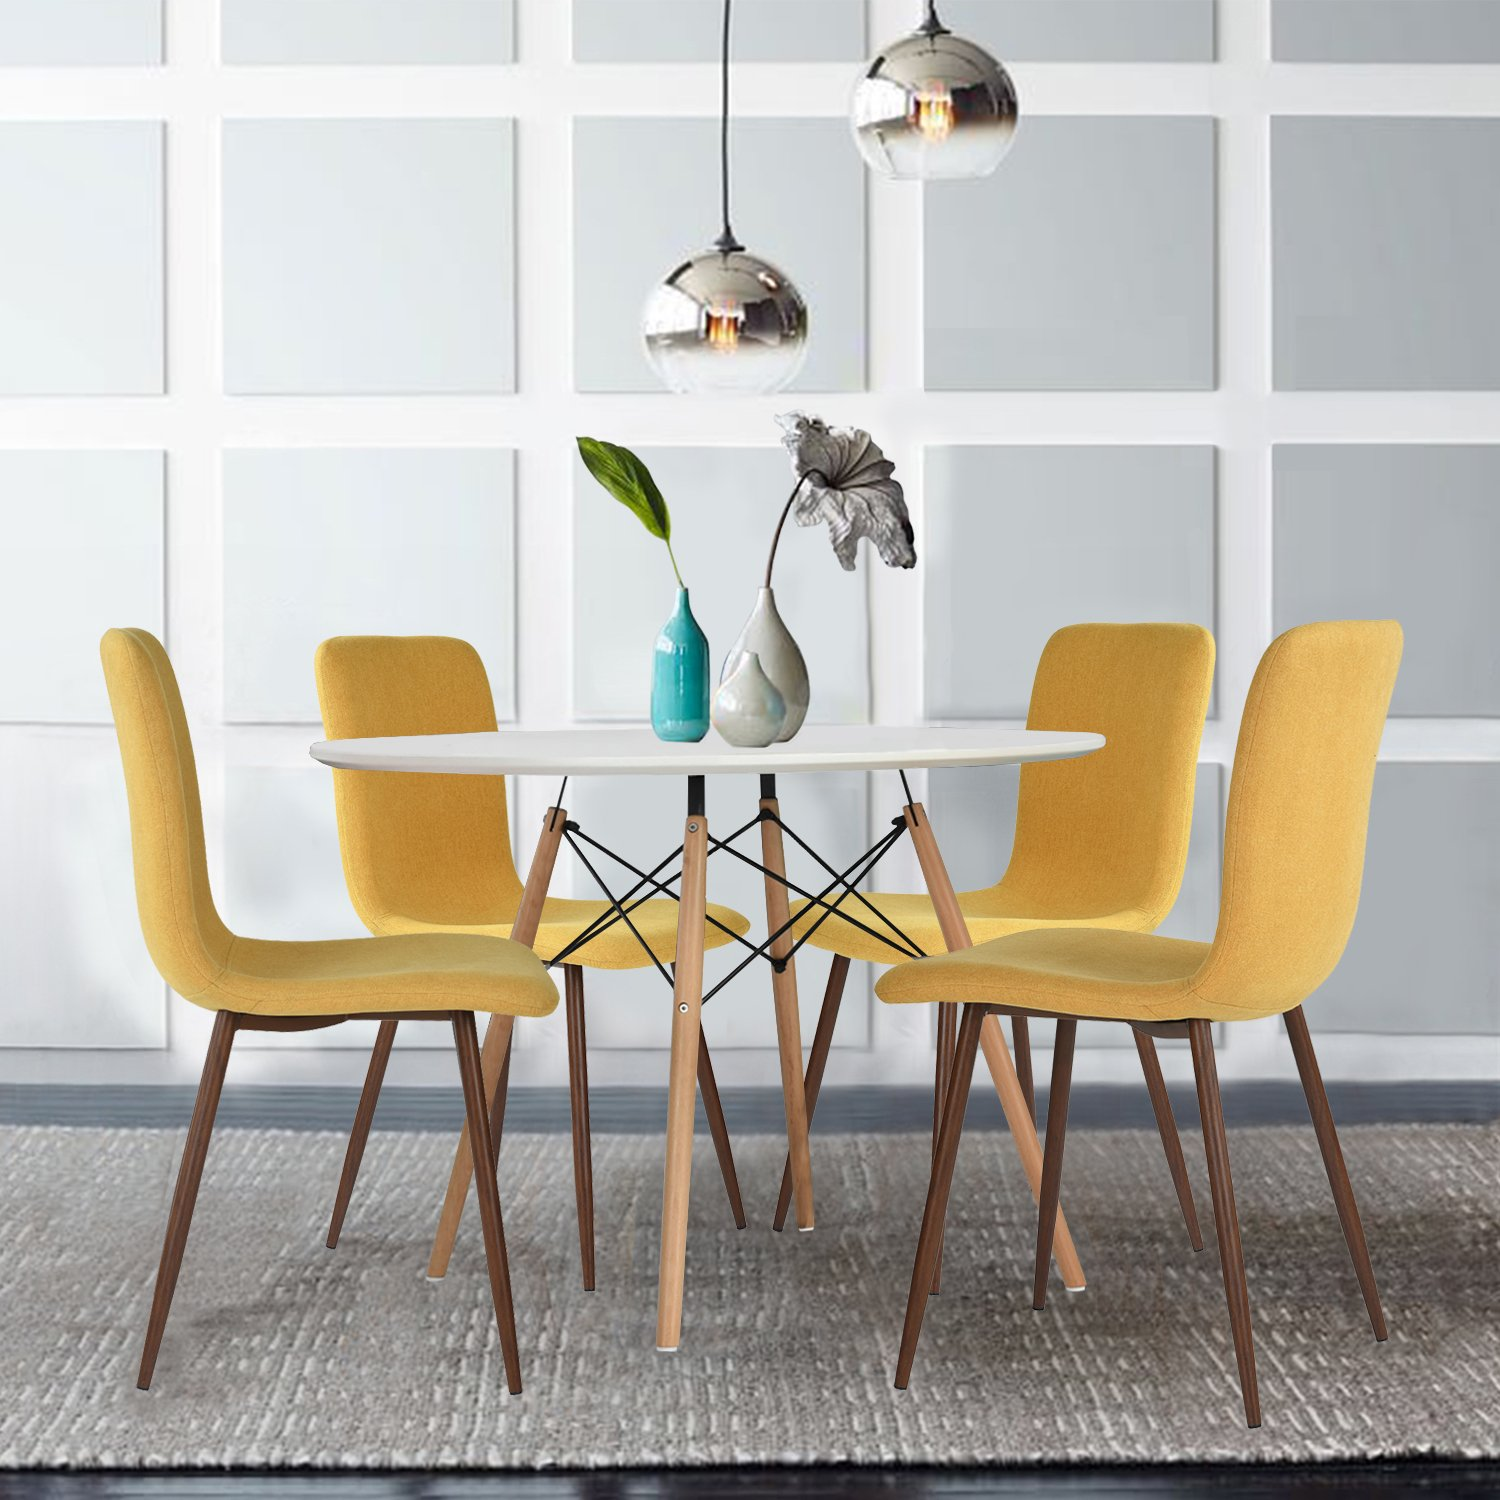 Set of 4 Dining Chairs Coavas Fabric Cushion Kitchen Chairs with ...